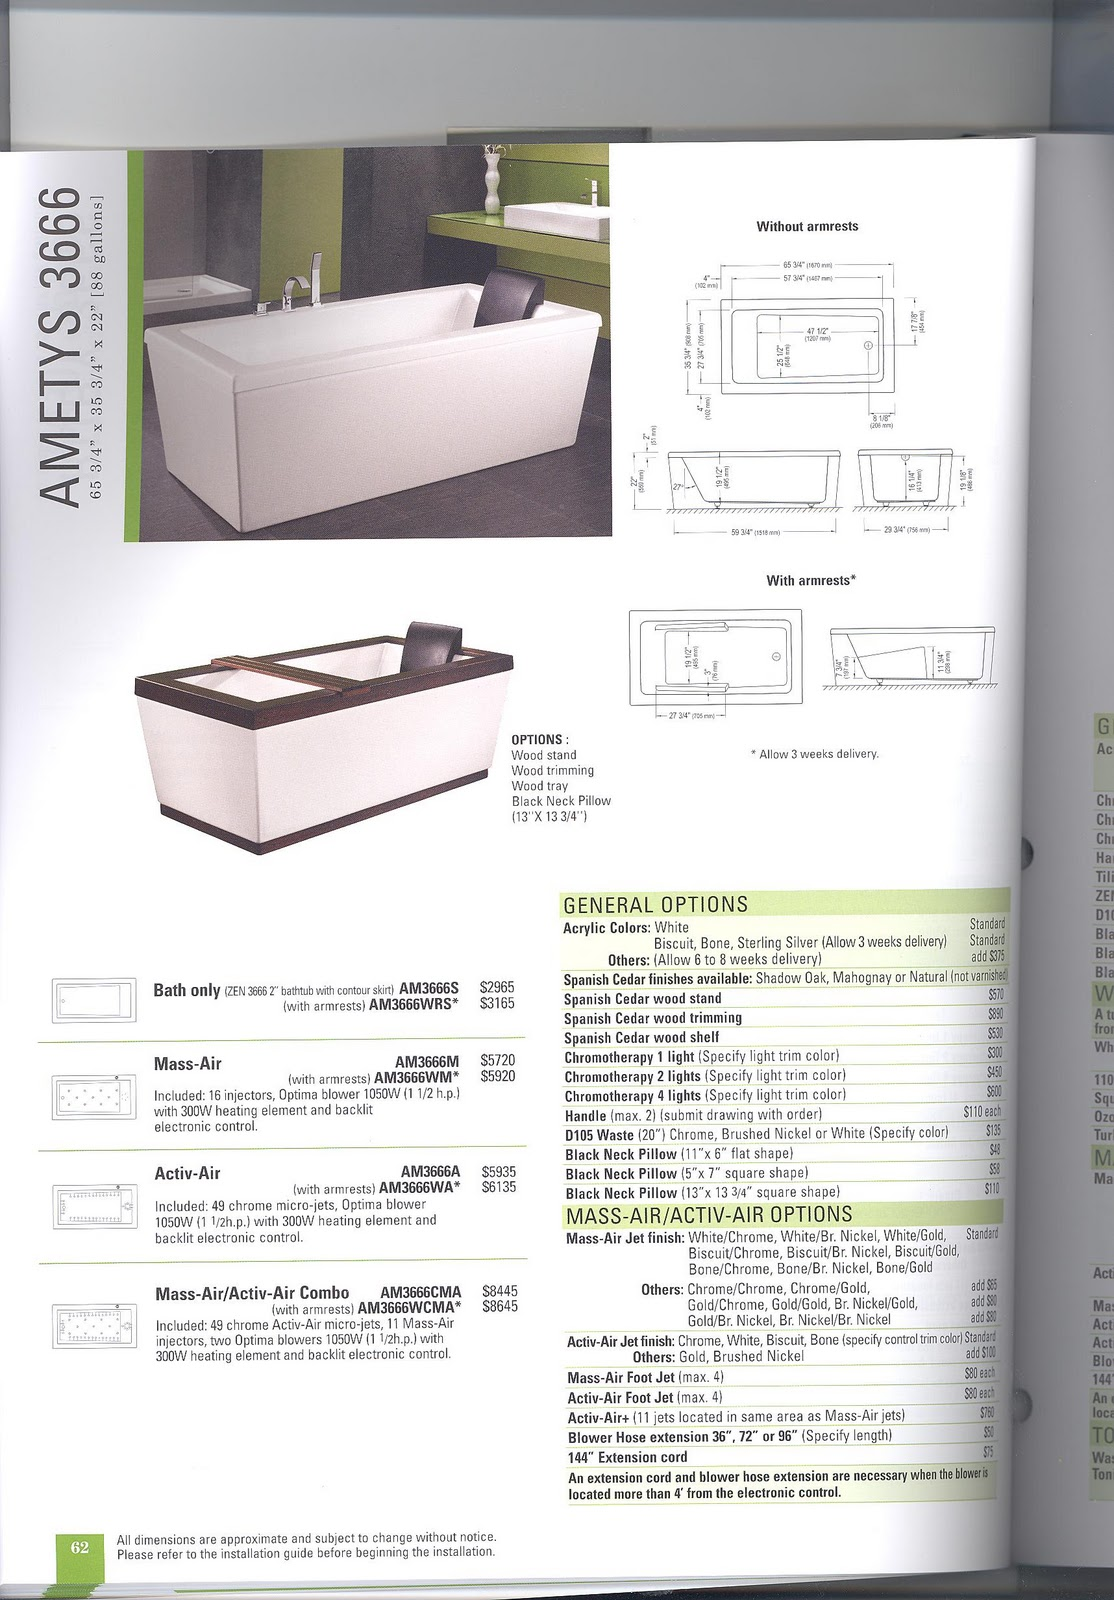 Bathroom vanities ft lauderdale - Dougs Tubs In Florida